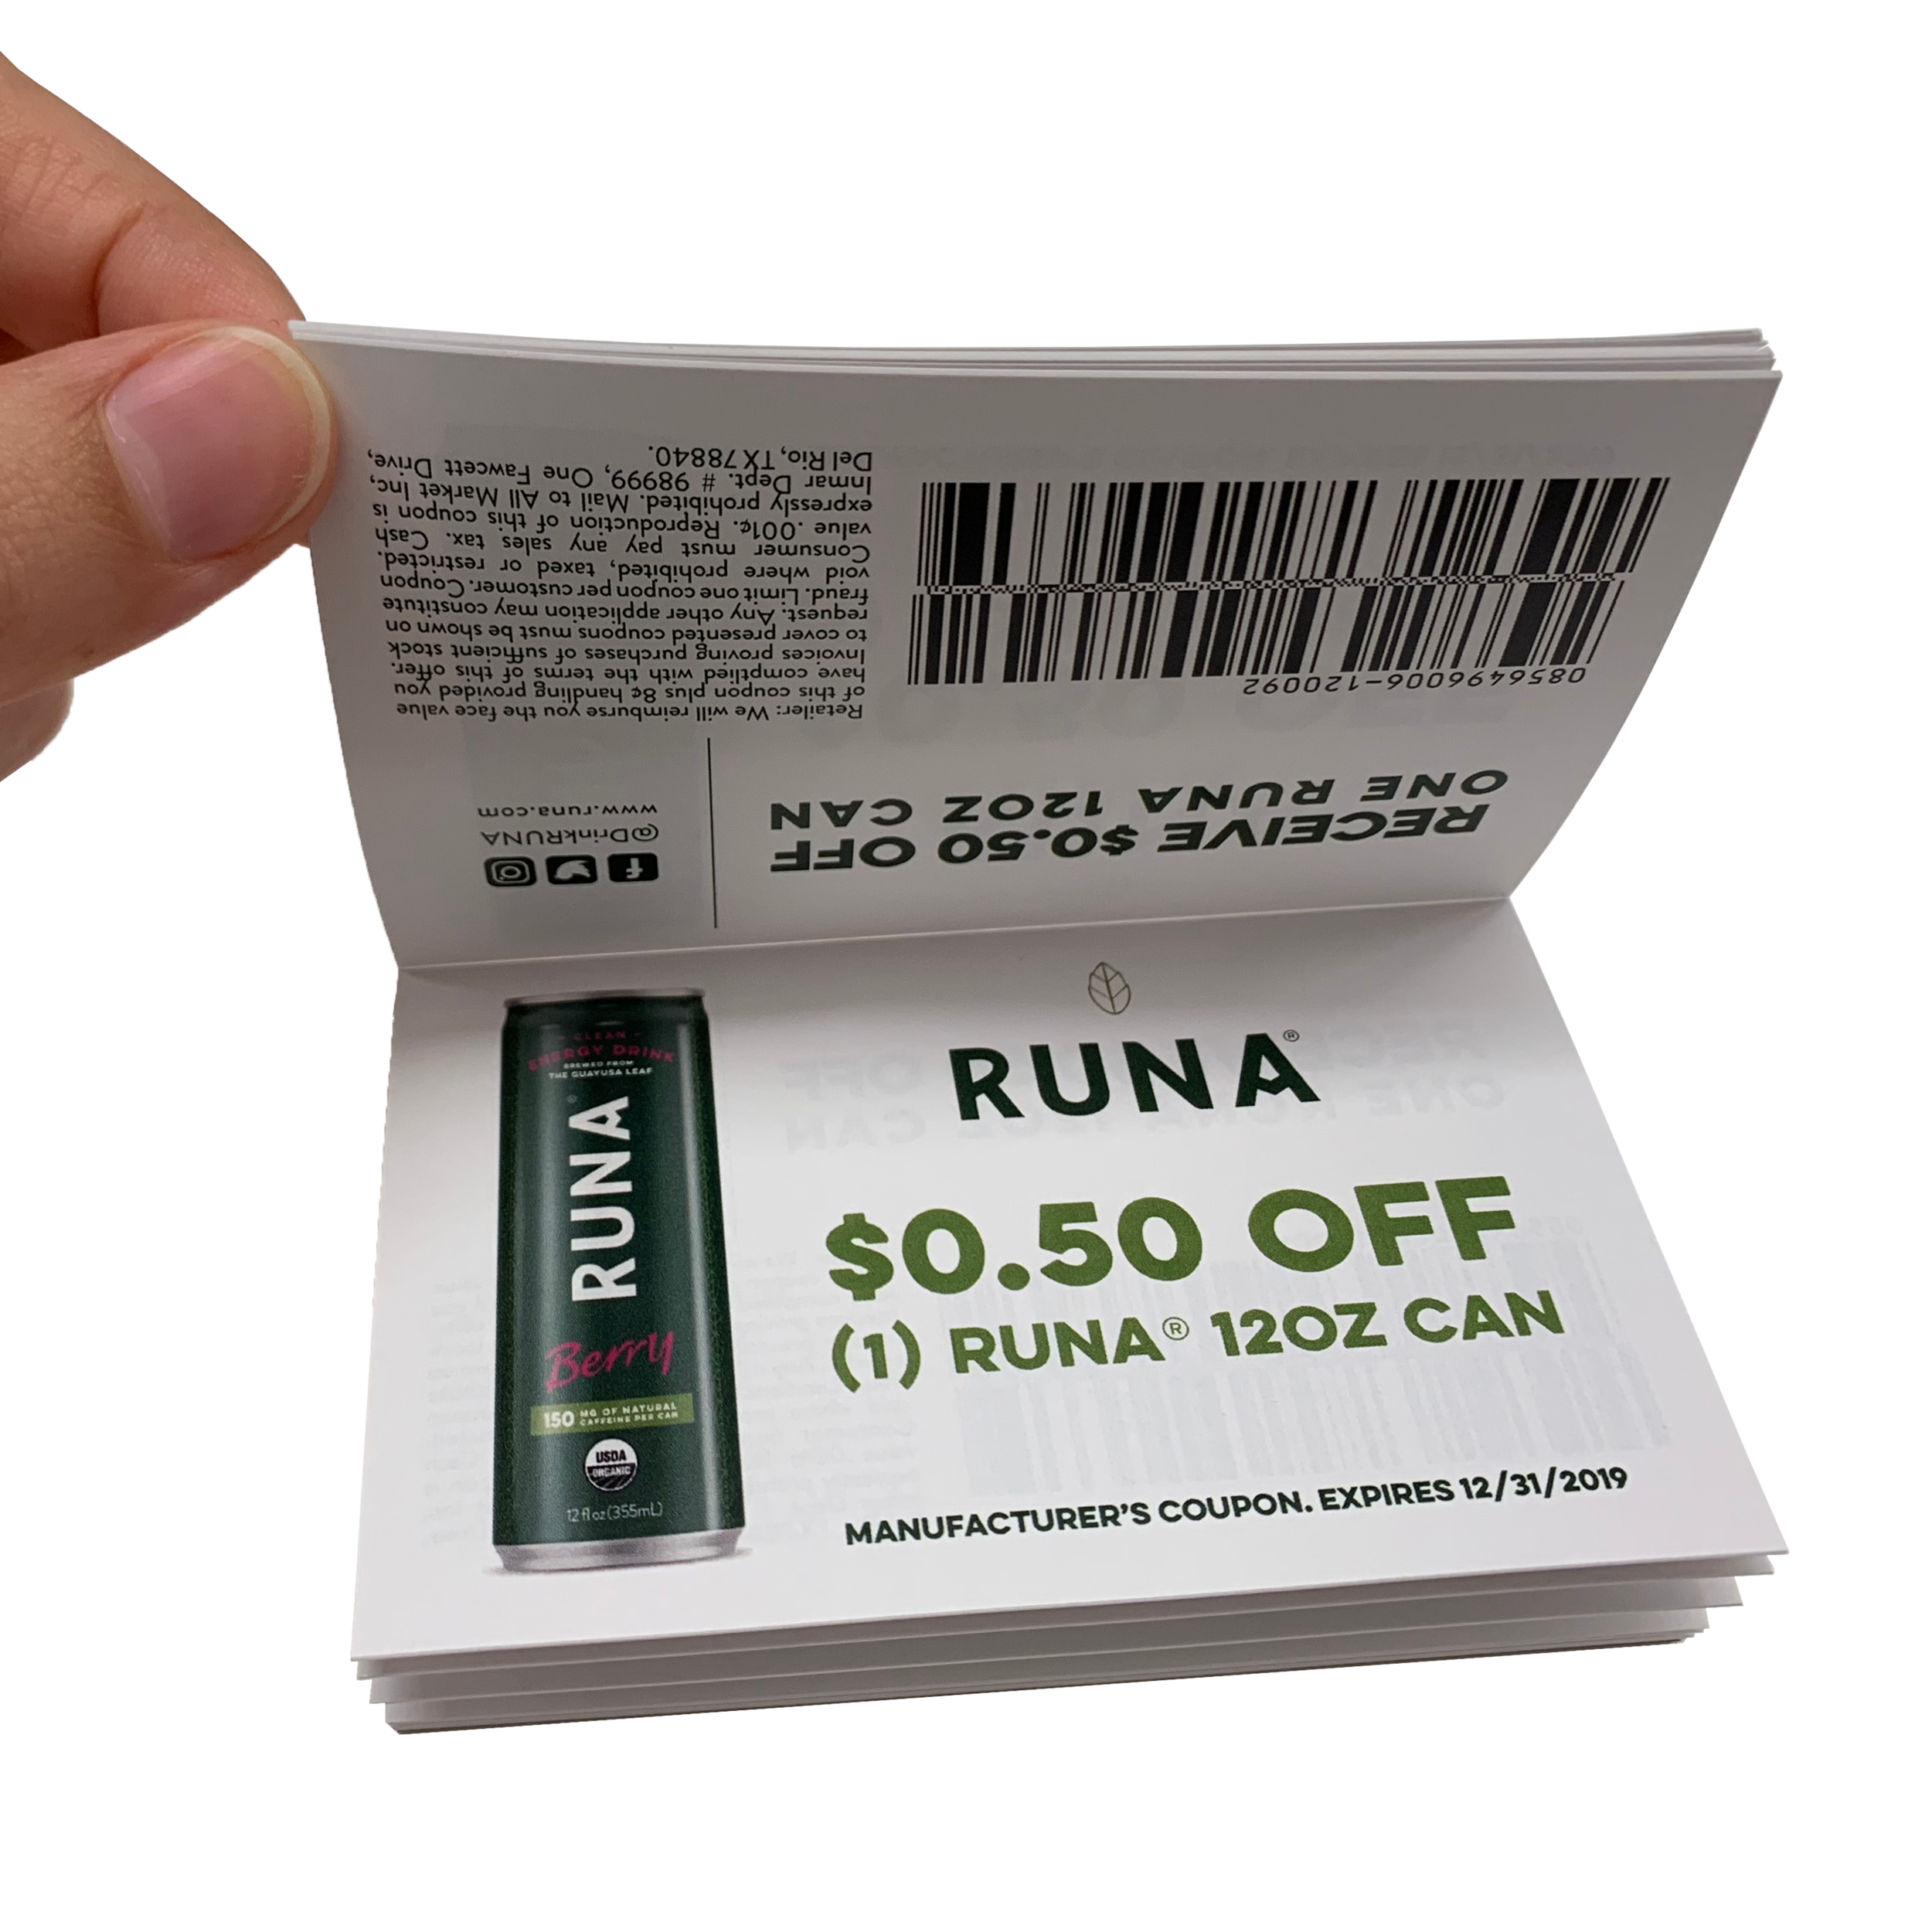 Runa Coupon Tearpad.png